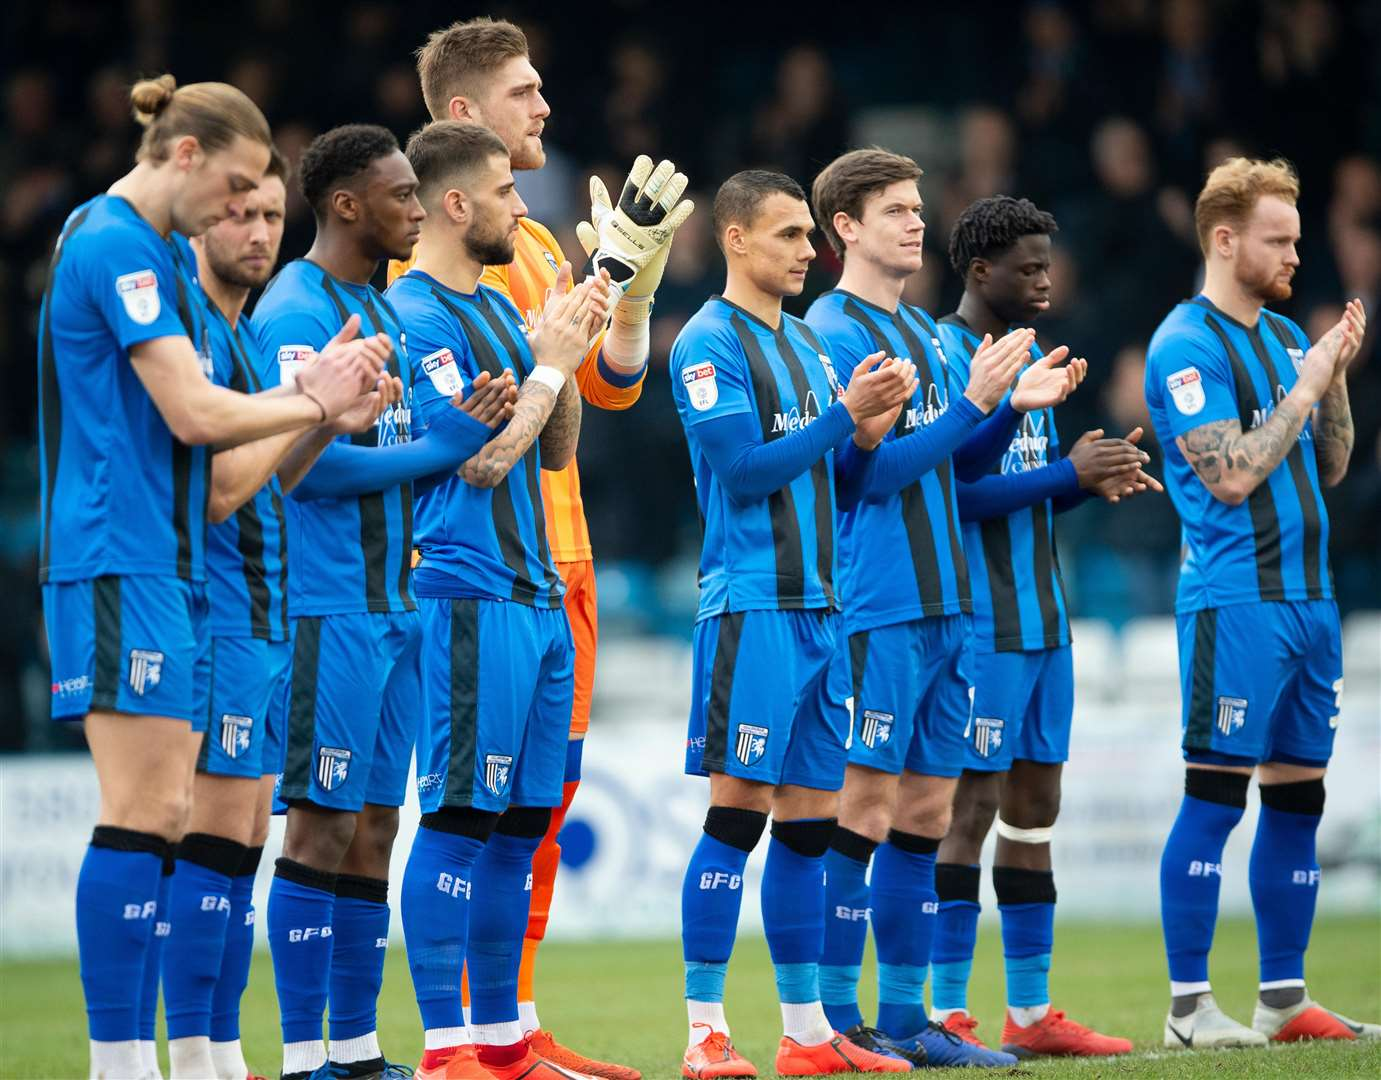 The Gills players pay their respects to England legend Gordon Banks with a minute's applause Picture: Ady Kerry